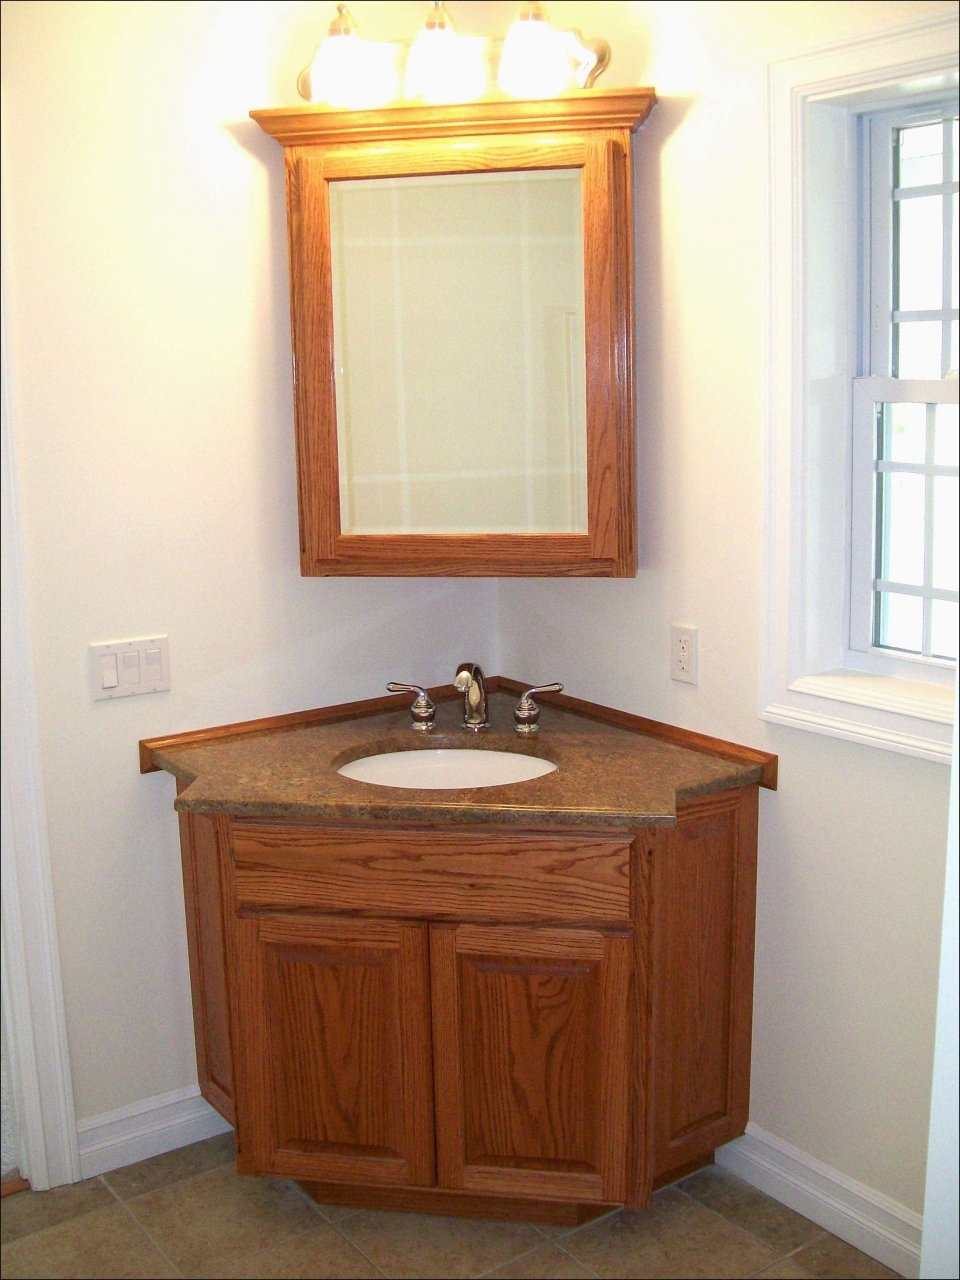 High Quality Bathroom Cabinet Solid Wood Vanity Units For Bathrooms